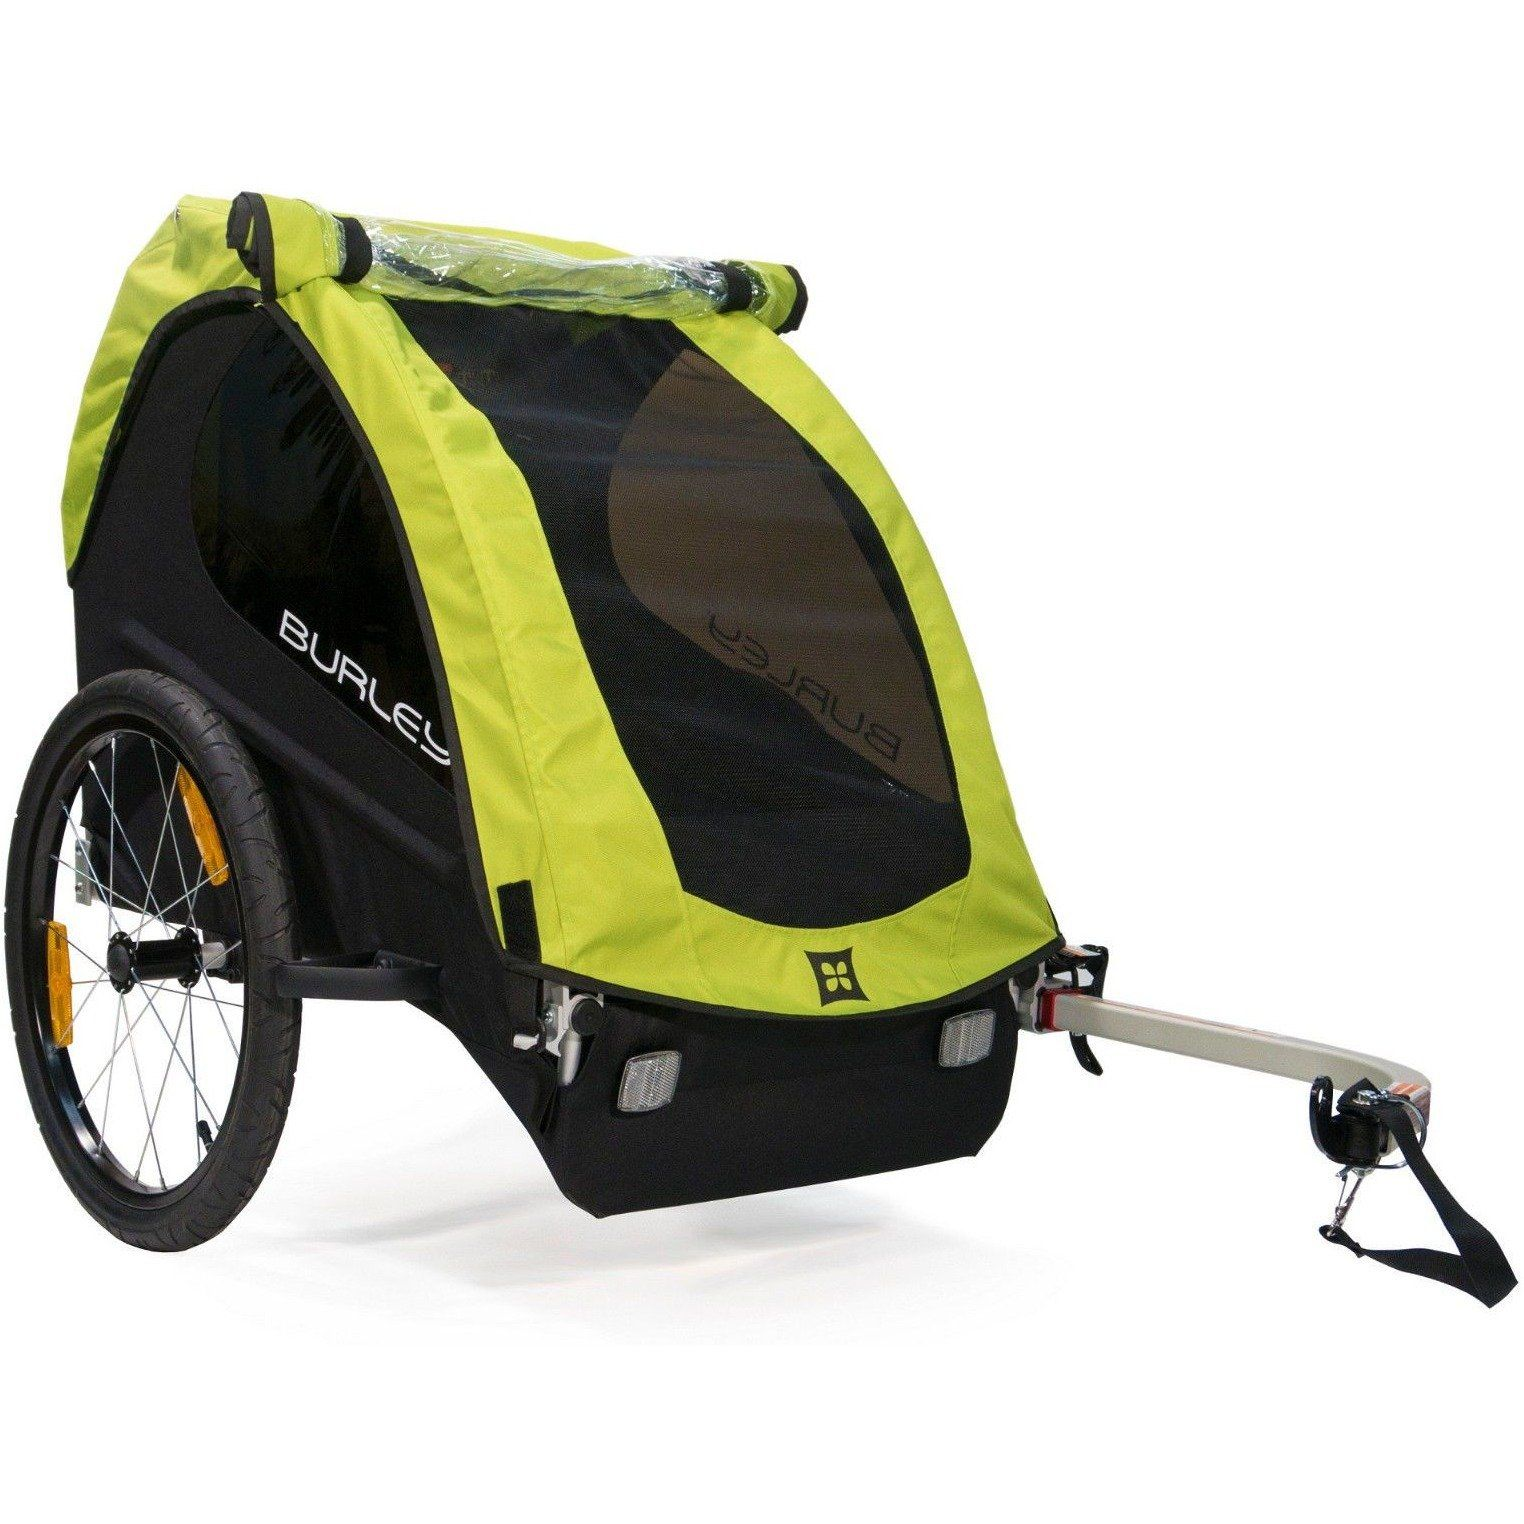 Burley Minnow Compact Fold Bike Bicycle Trailer For Single